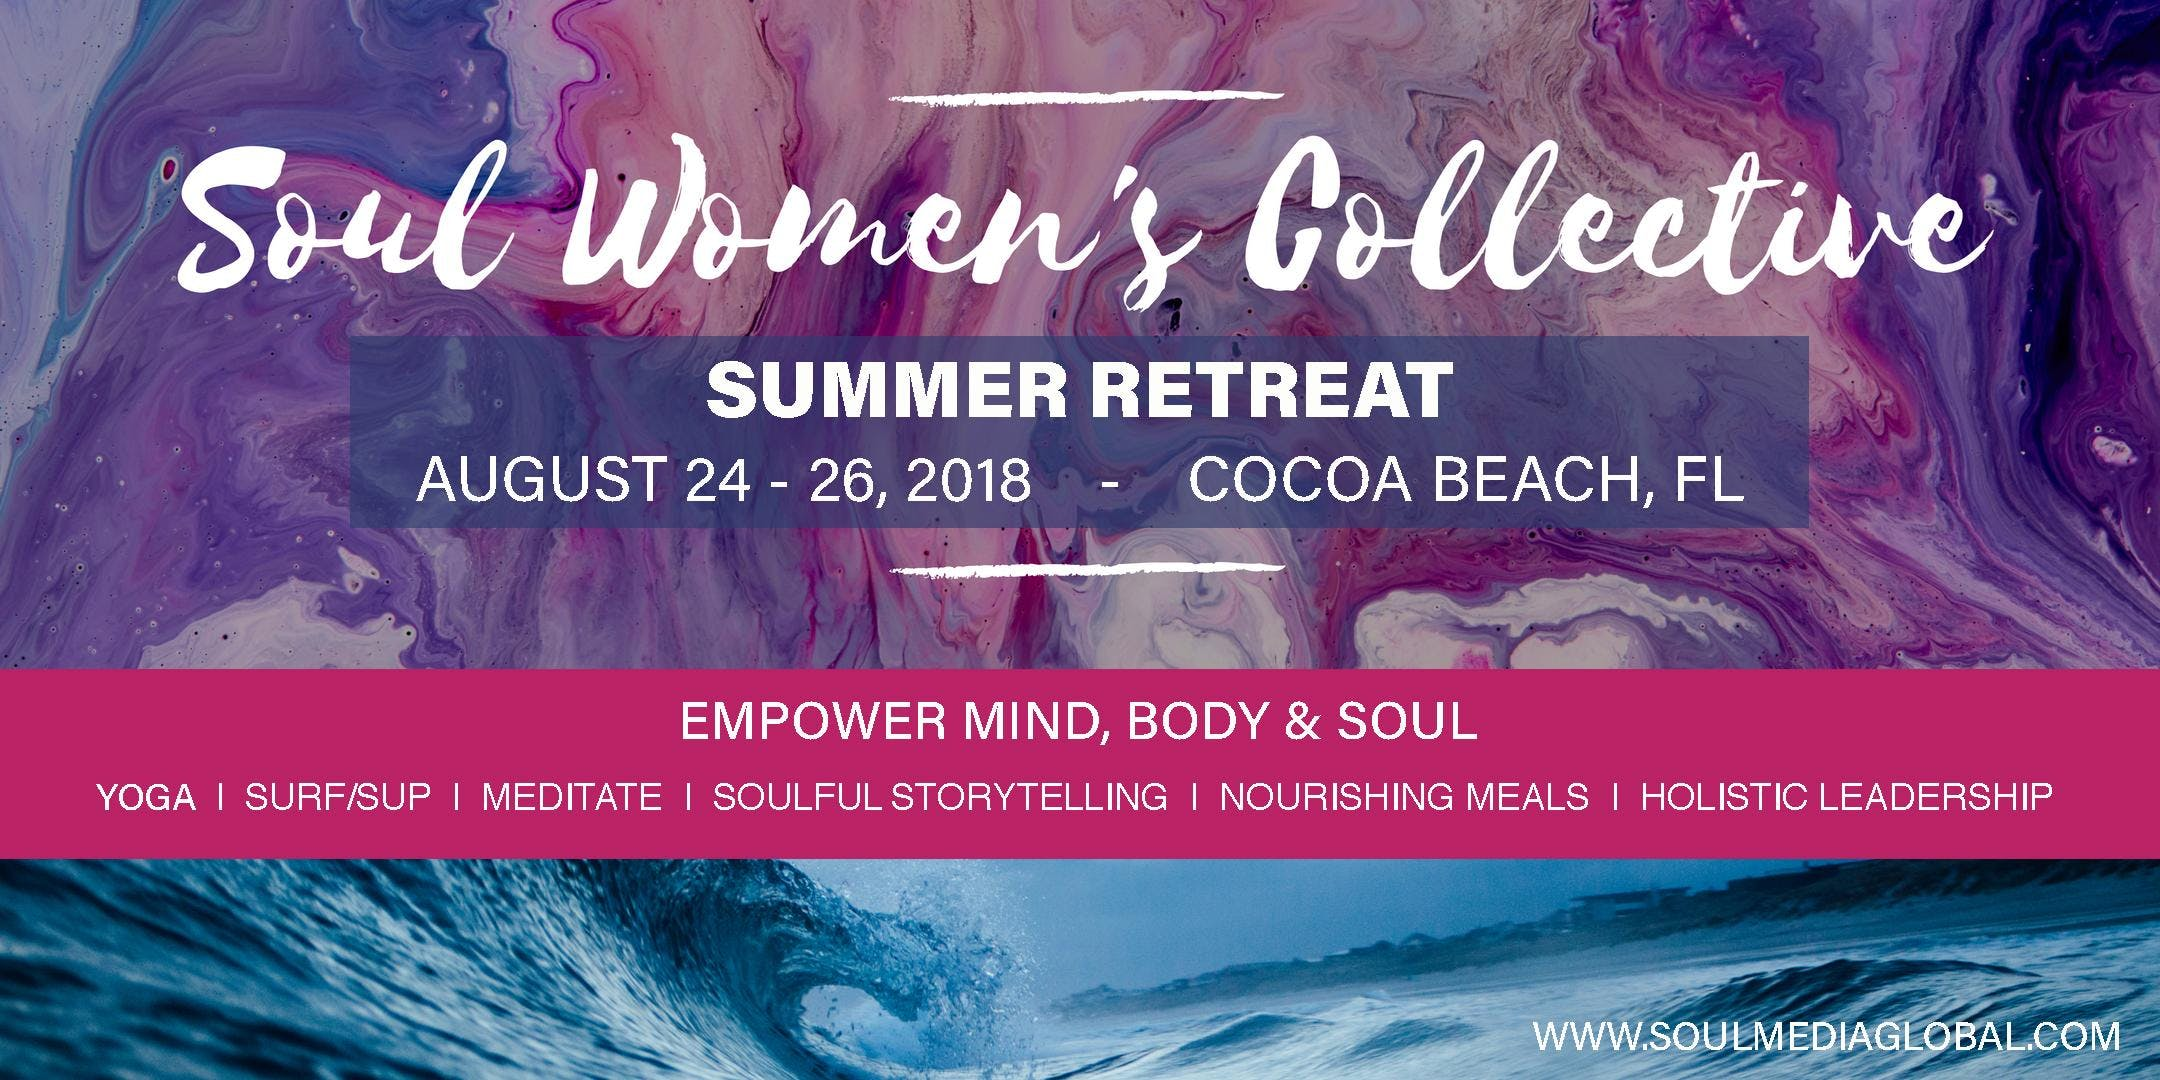 Soul Women's Collective Summer Retreat, Brevard County FL